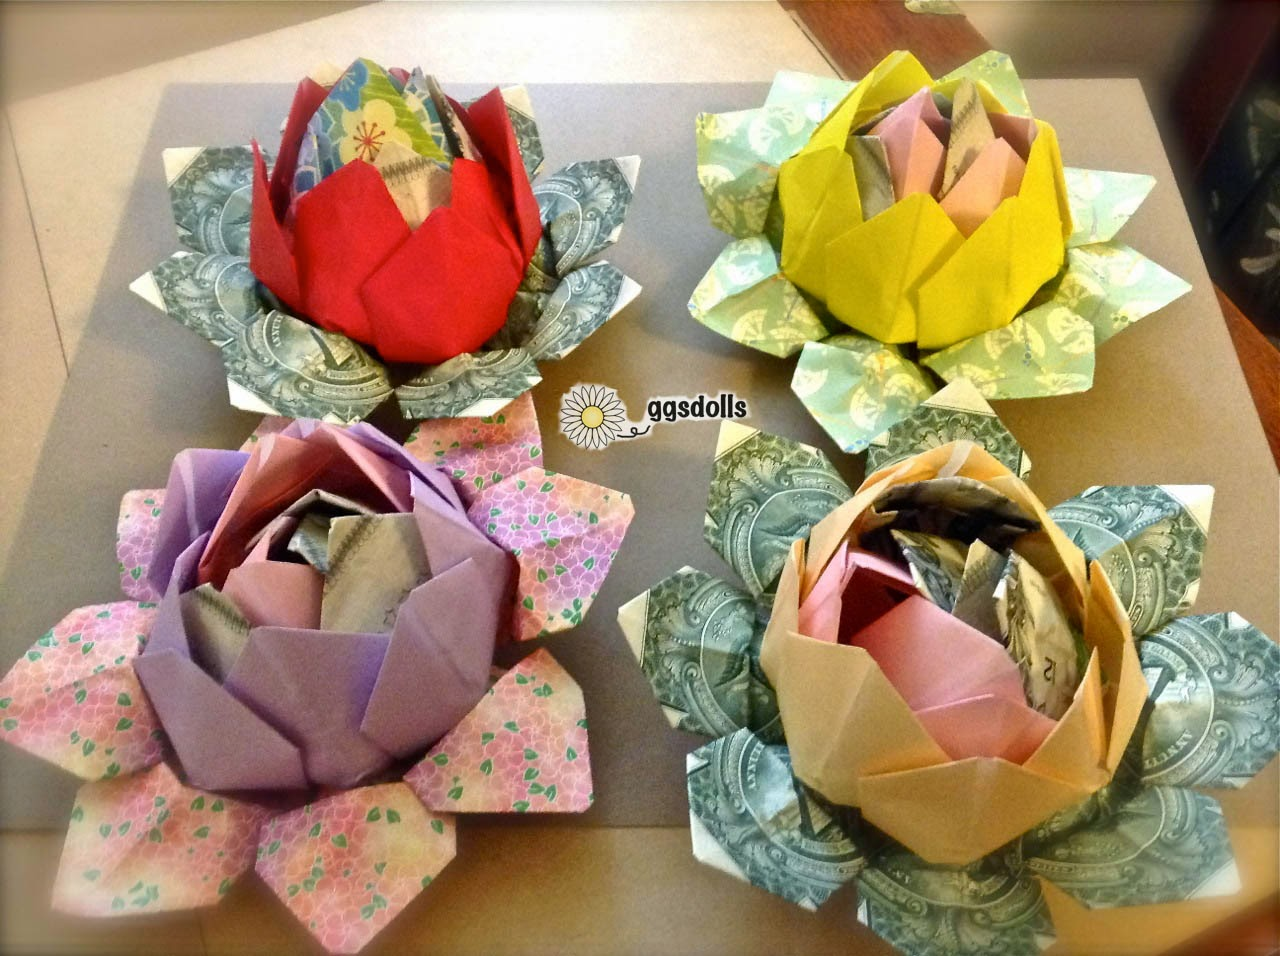 Ggsdolls Making More Origami Money Lotuses